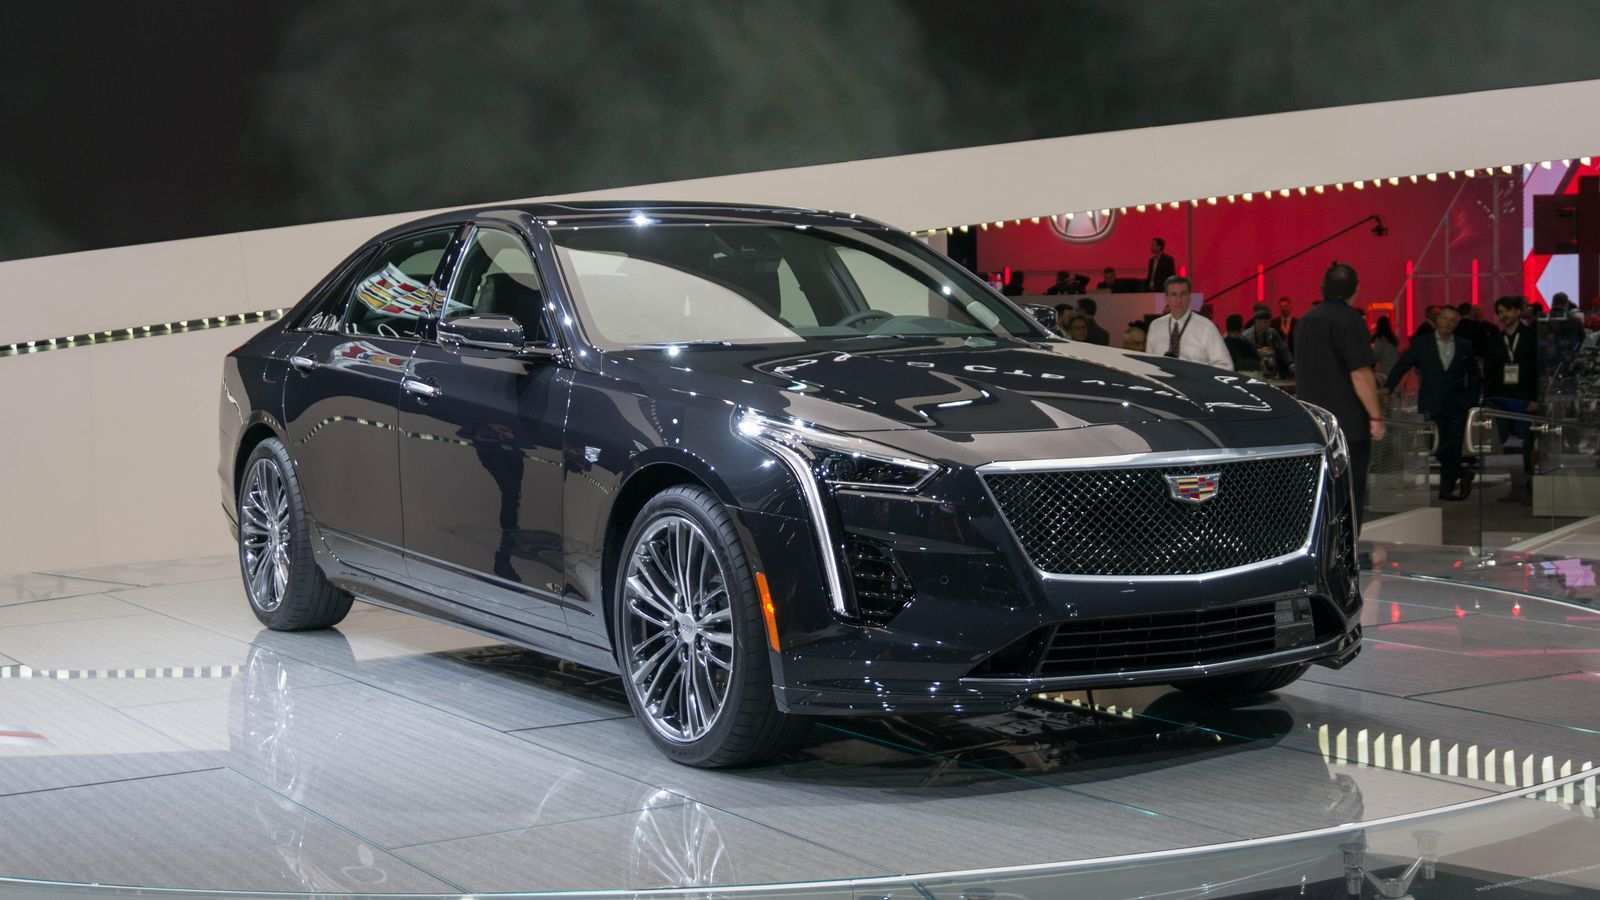 77 New New Ct6 Cadillac 2019 Price Review And Specs Price with New Ct6 Cadillac 2019 Price Review And Specs